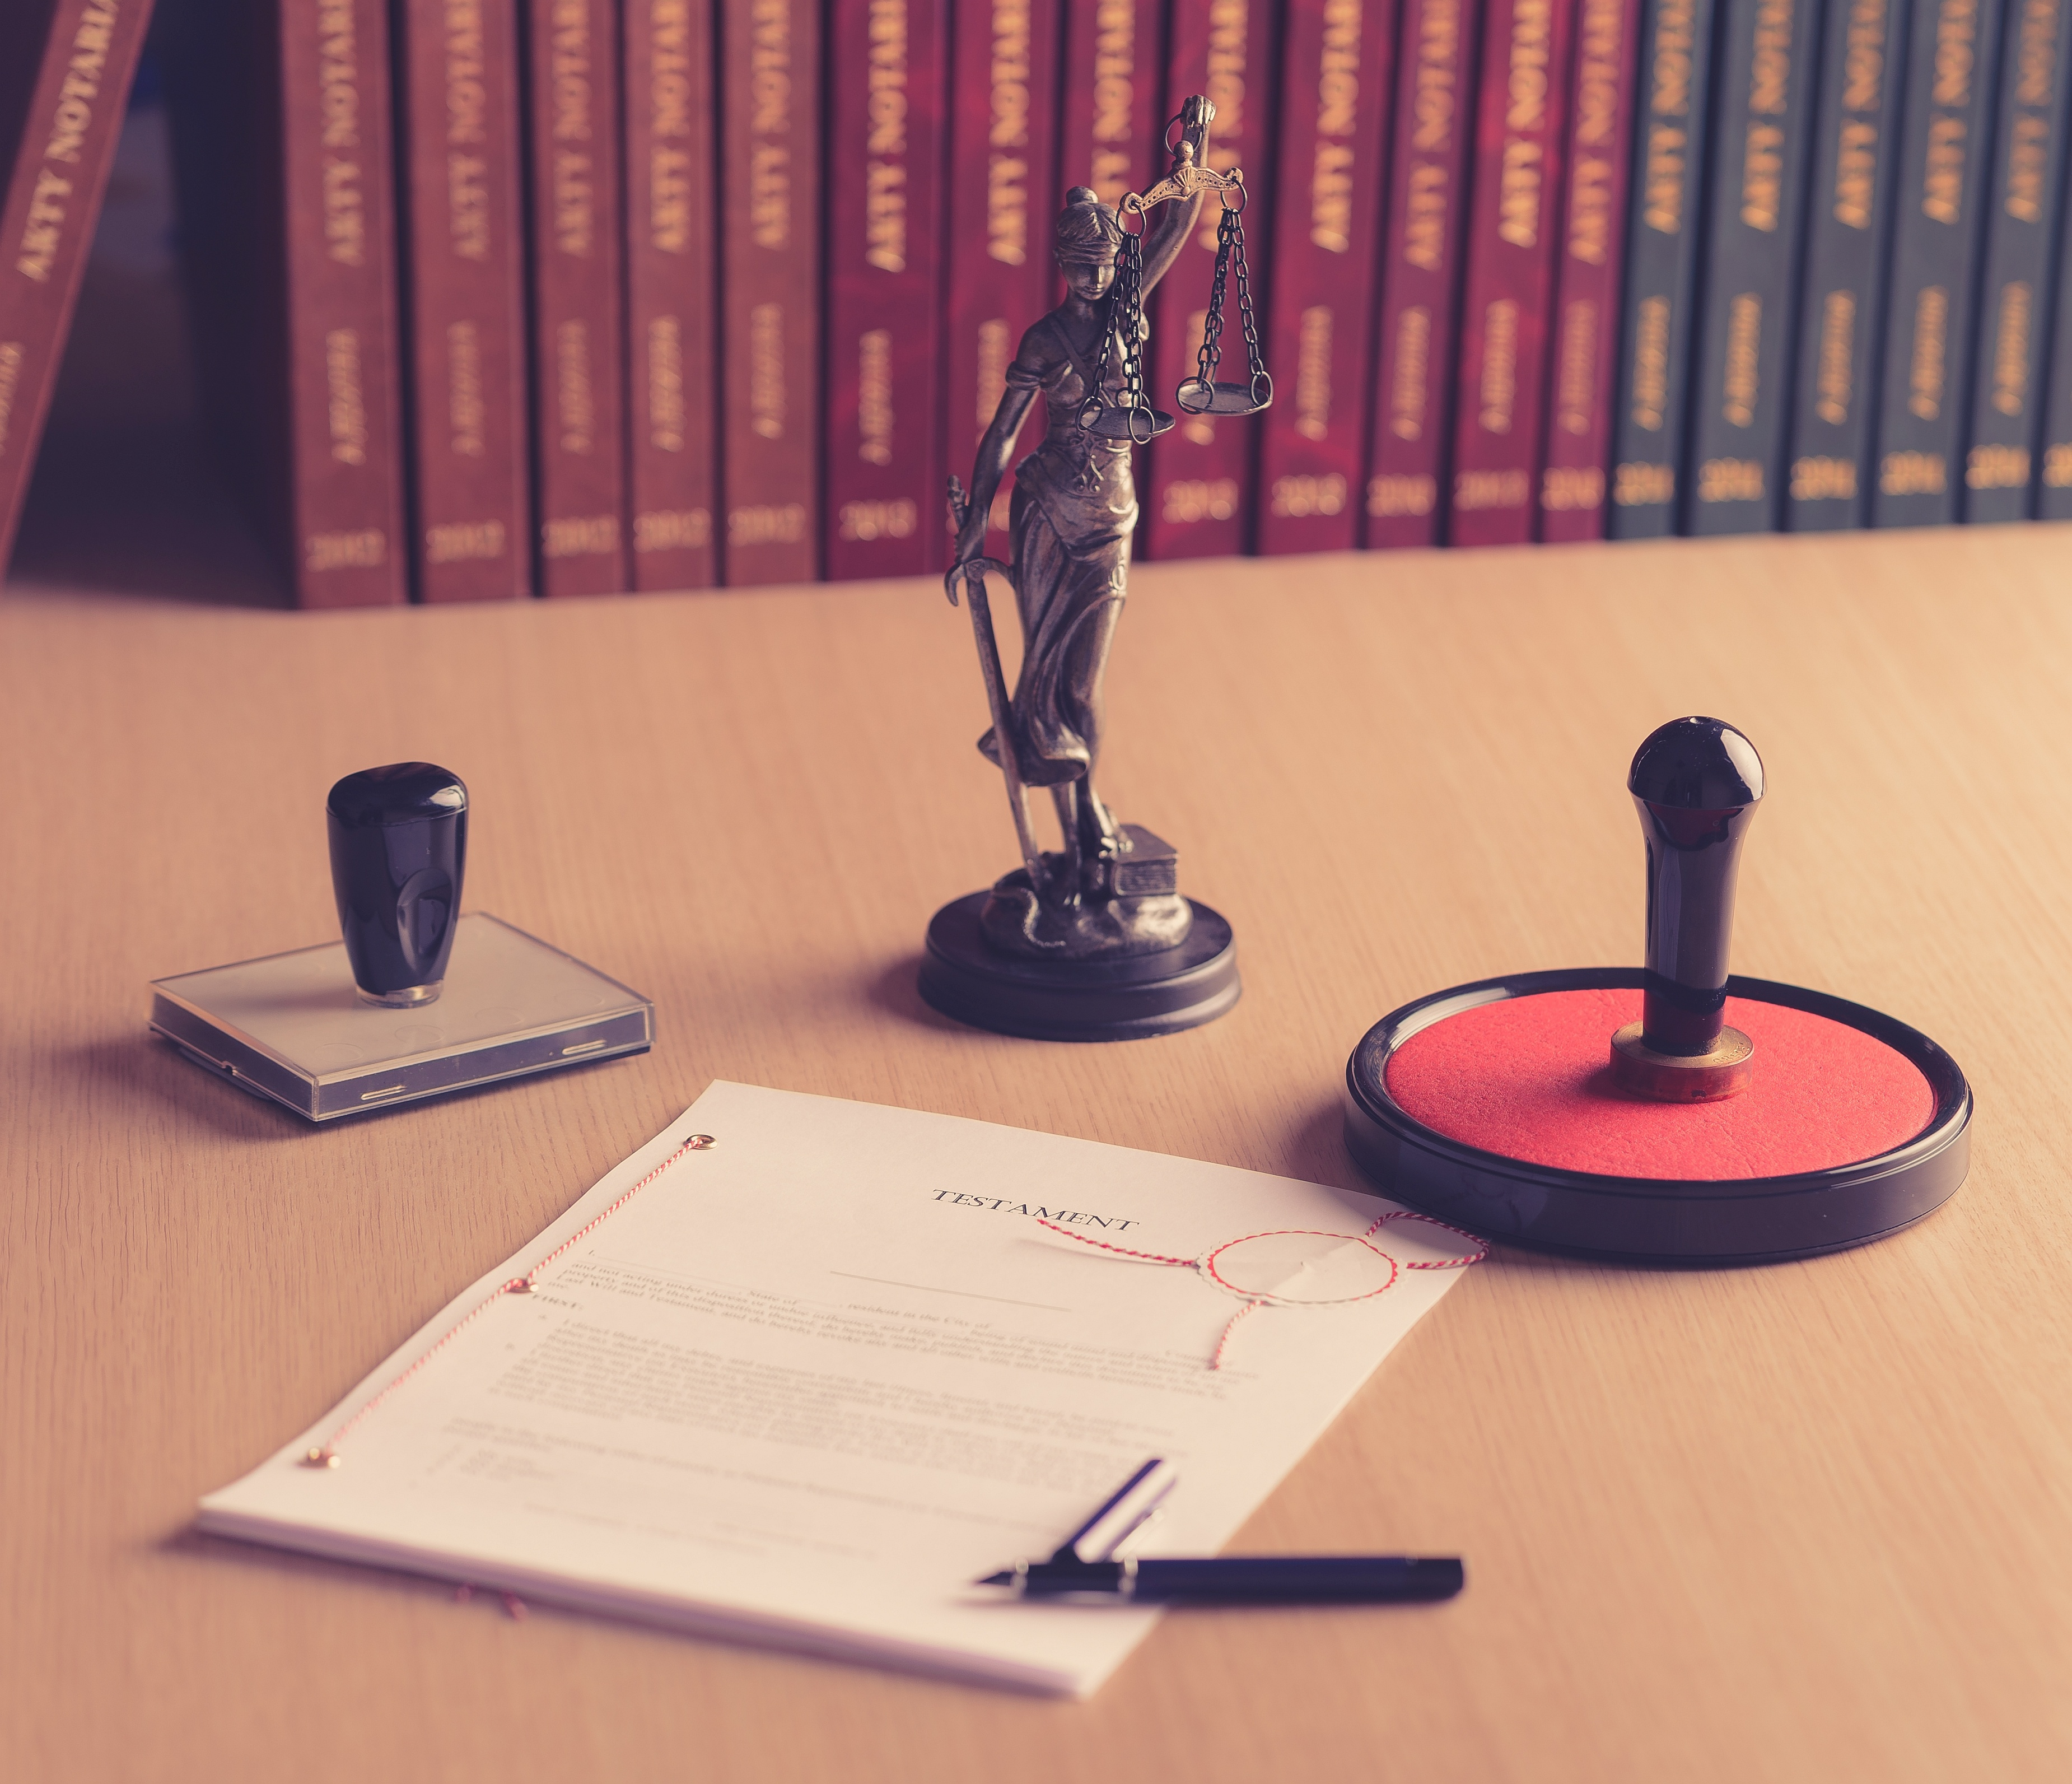 How To Become A Missouri Notary In 6 Easy Steps